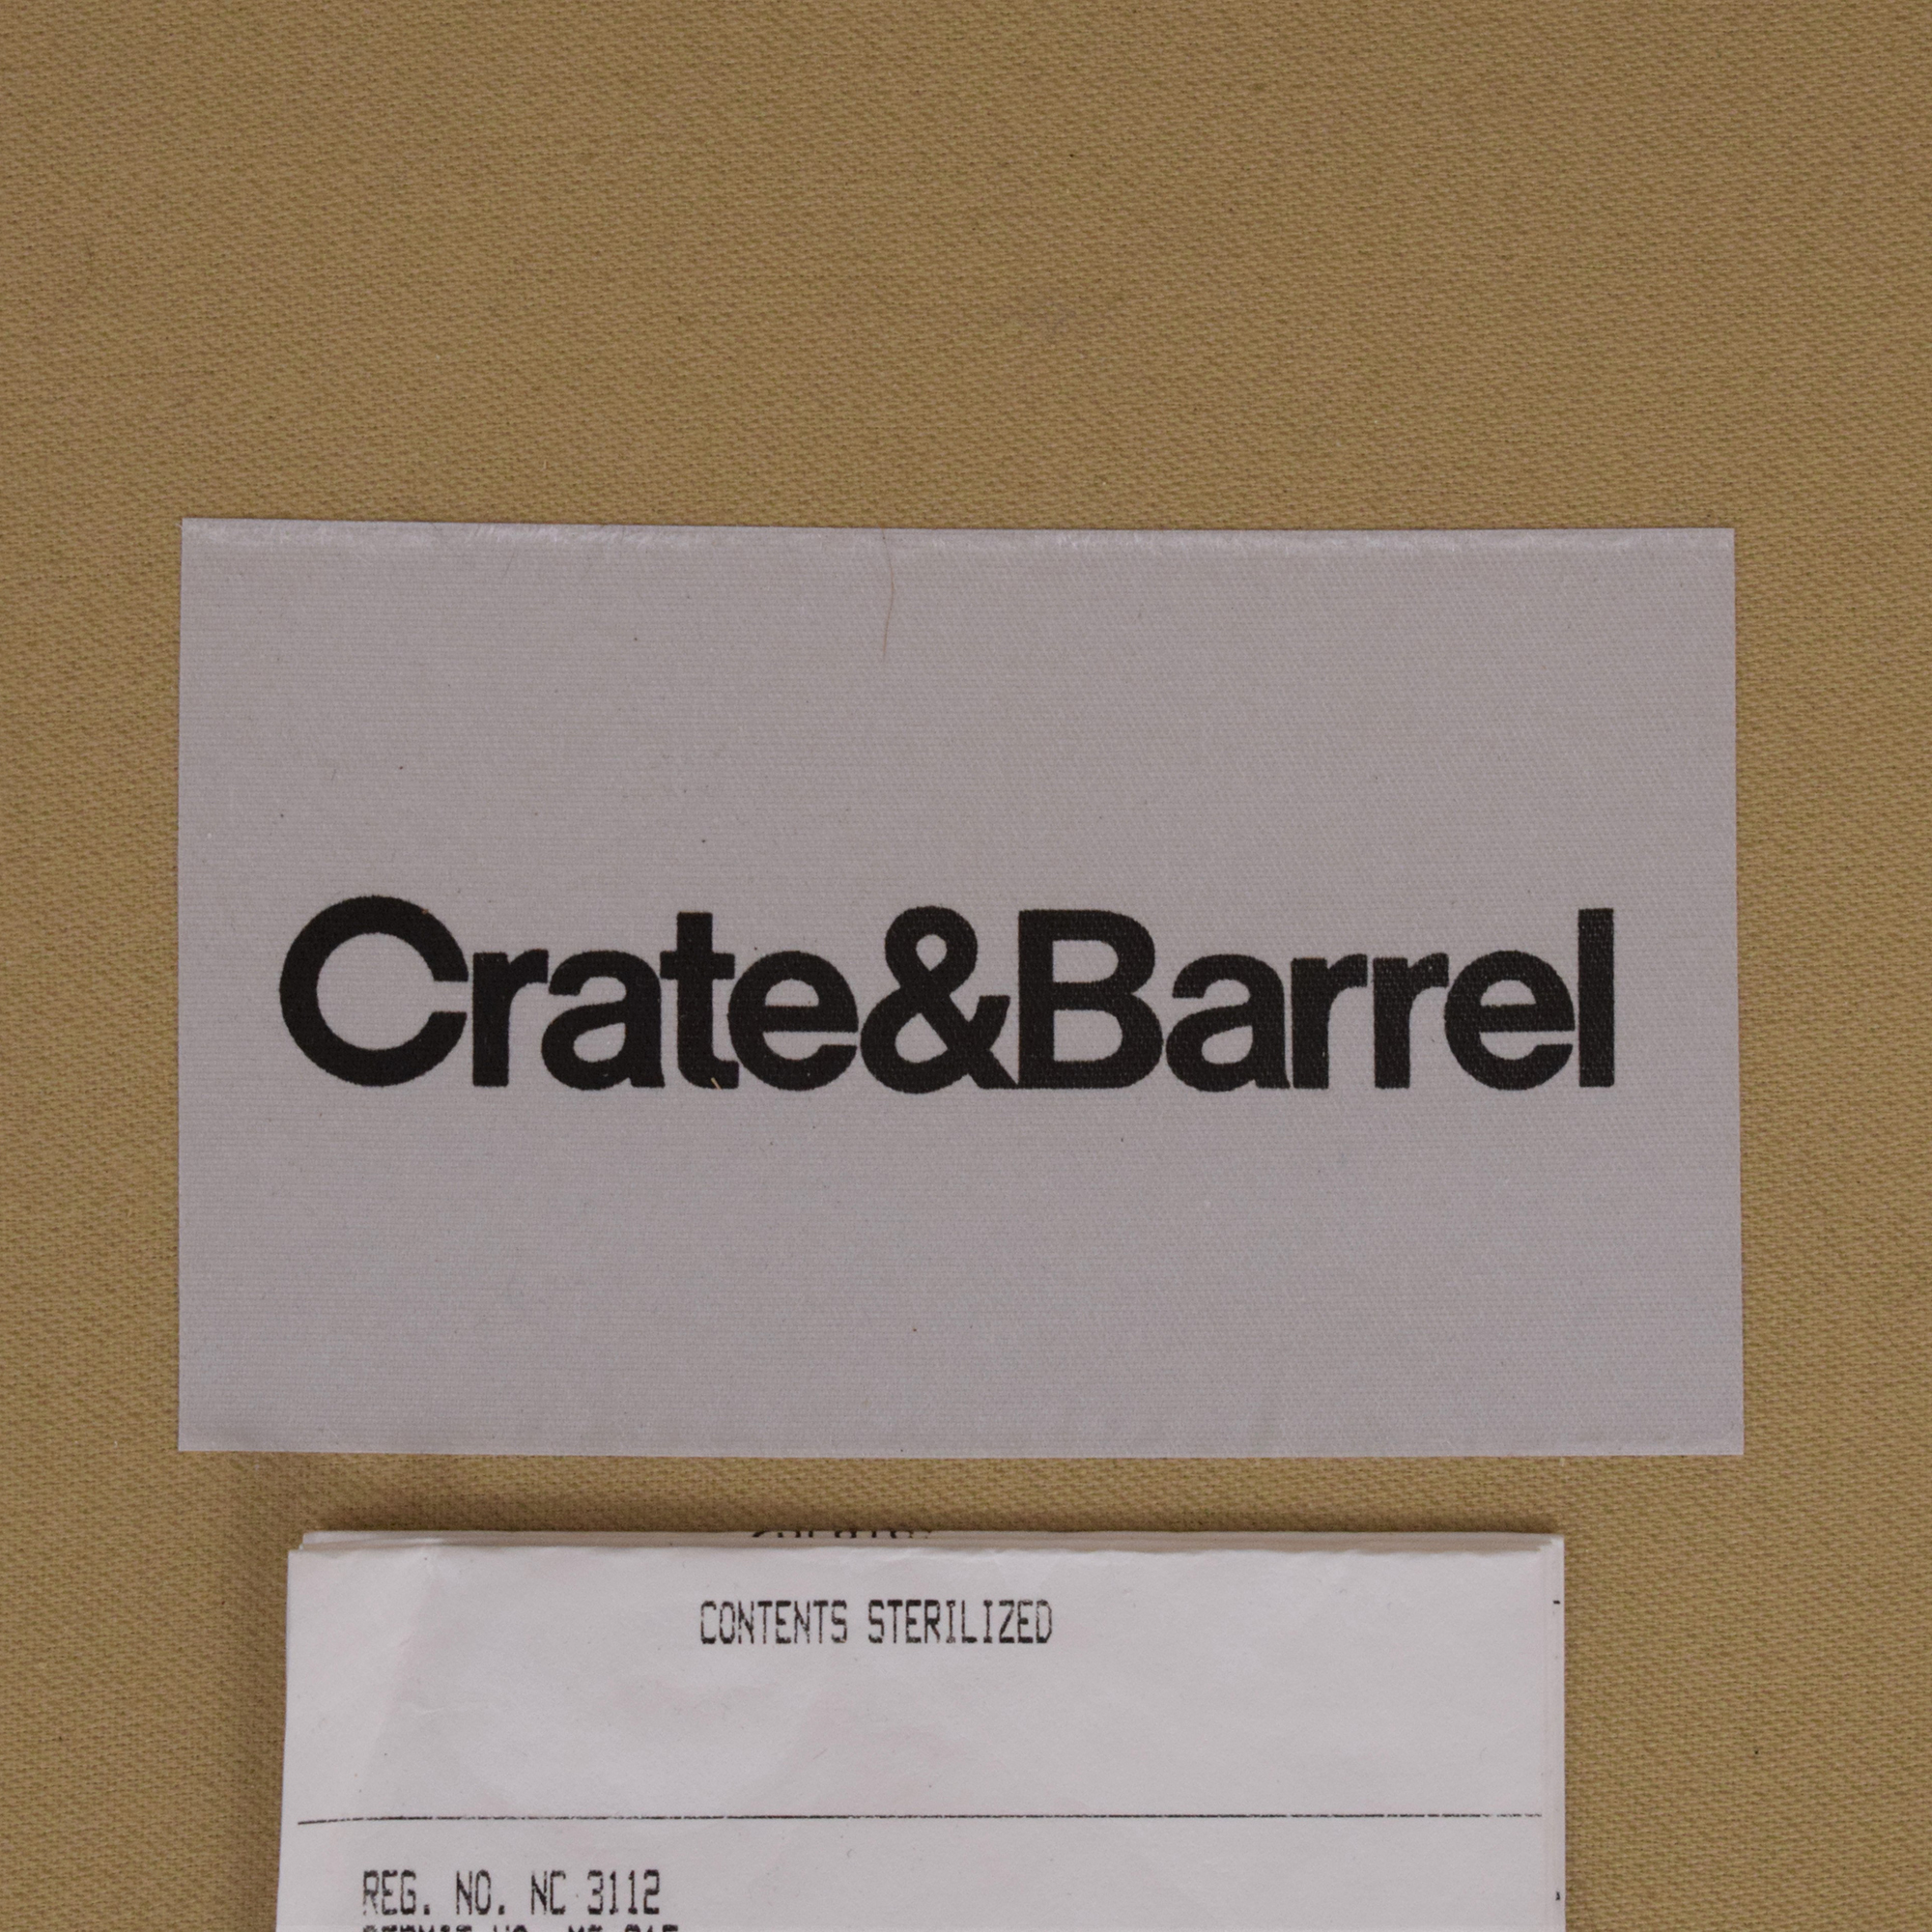 Crate & Barrel Crate & Barrel Essex Sofa with Ottoman used